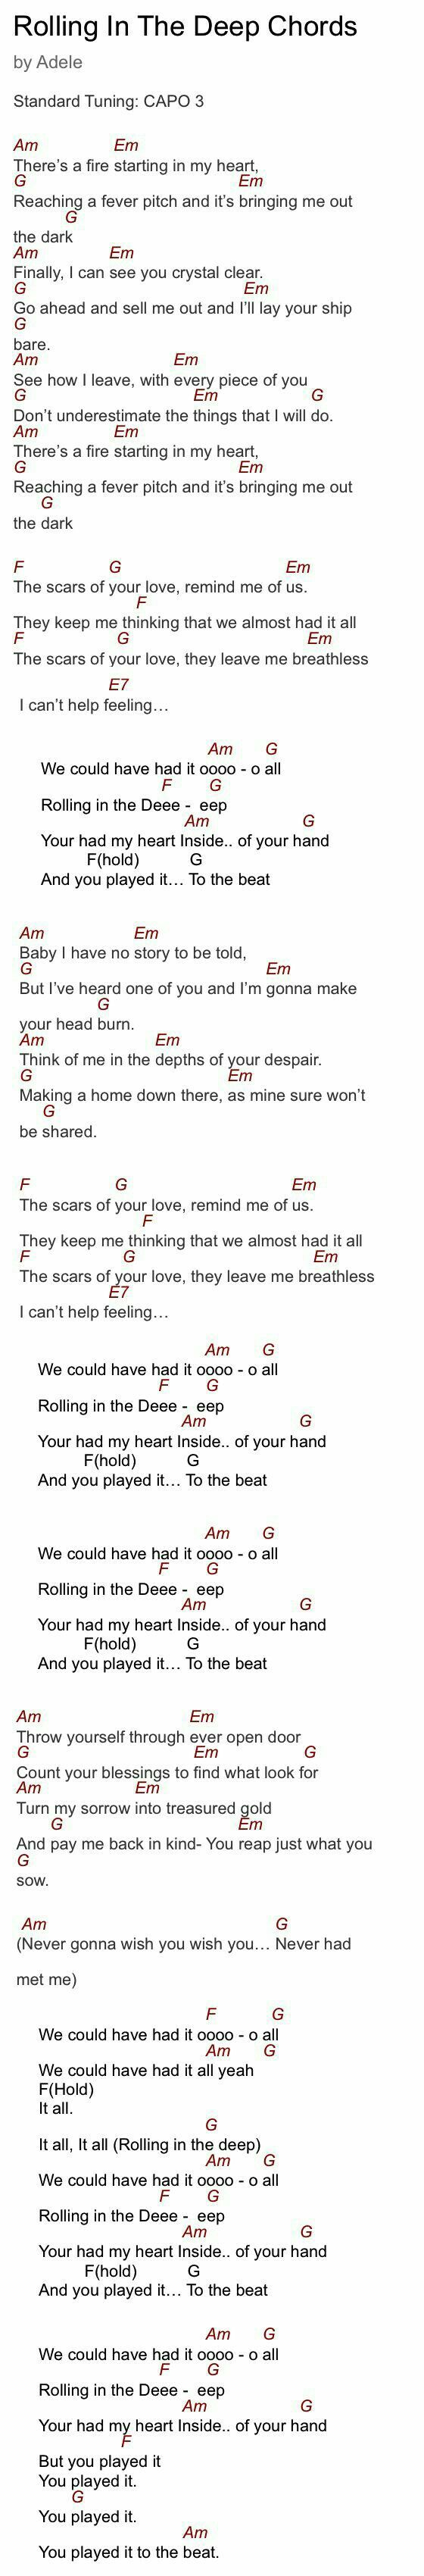 Adele - Rolling In The Deep Lyrics and guitar chords